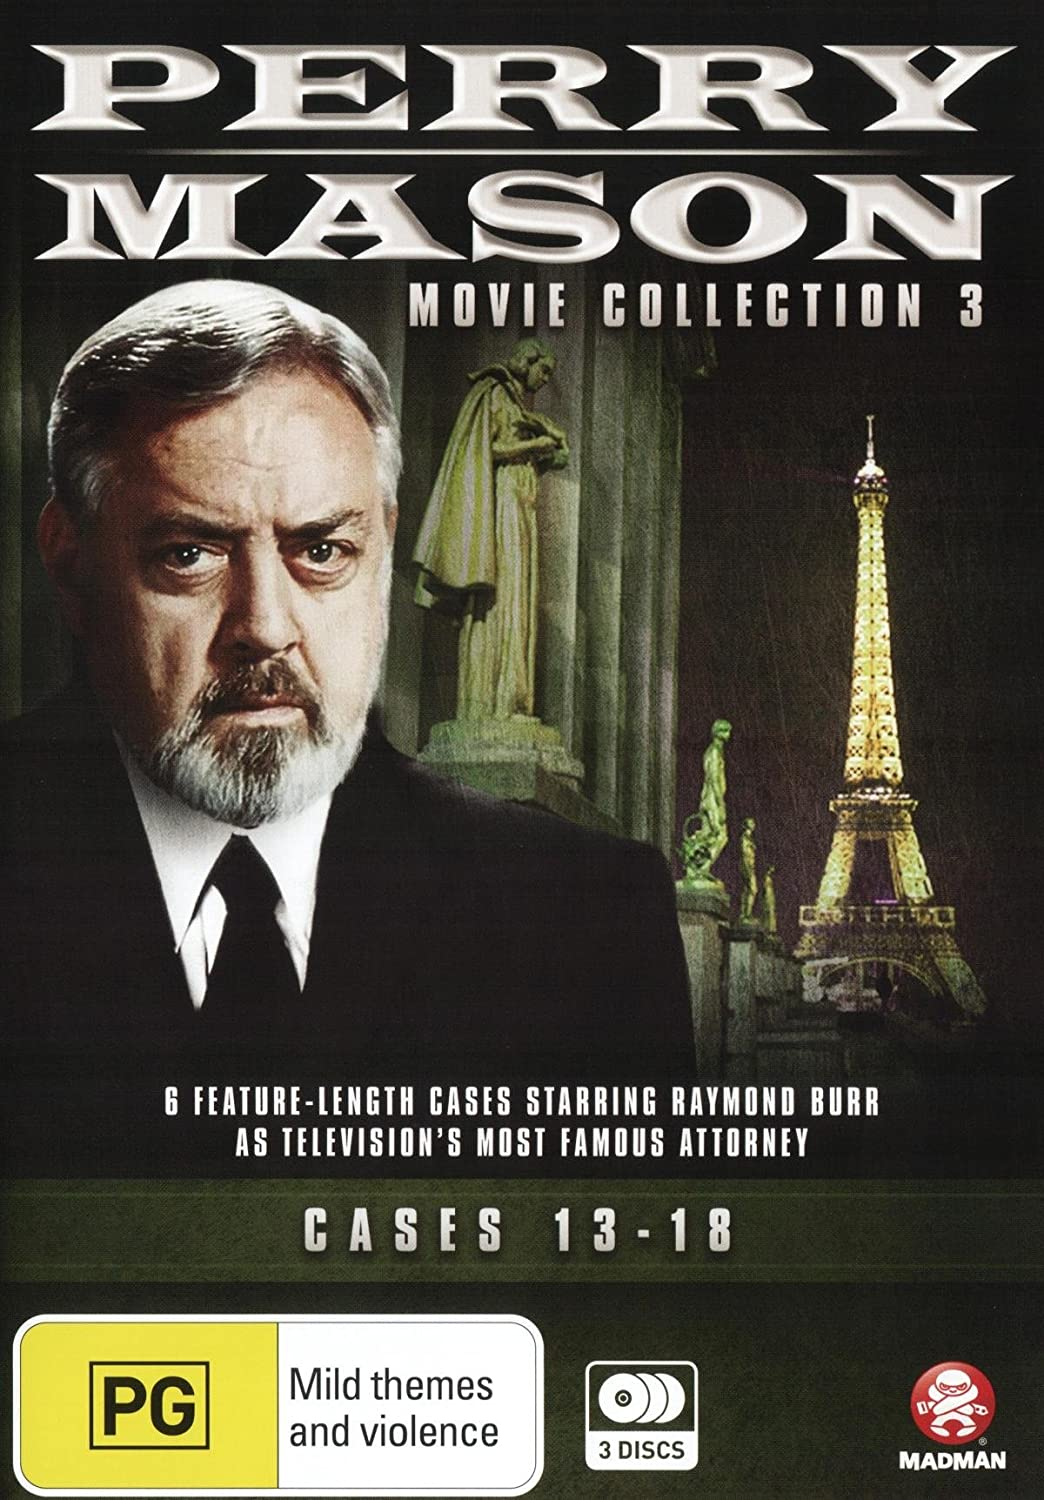 Perry Mason: Movie Super Ranking TOP2 popular specialty store Collection 3: Format 13-18 NON-USA Cases Re